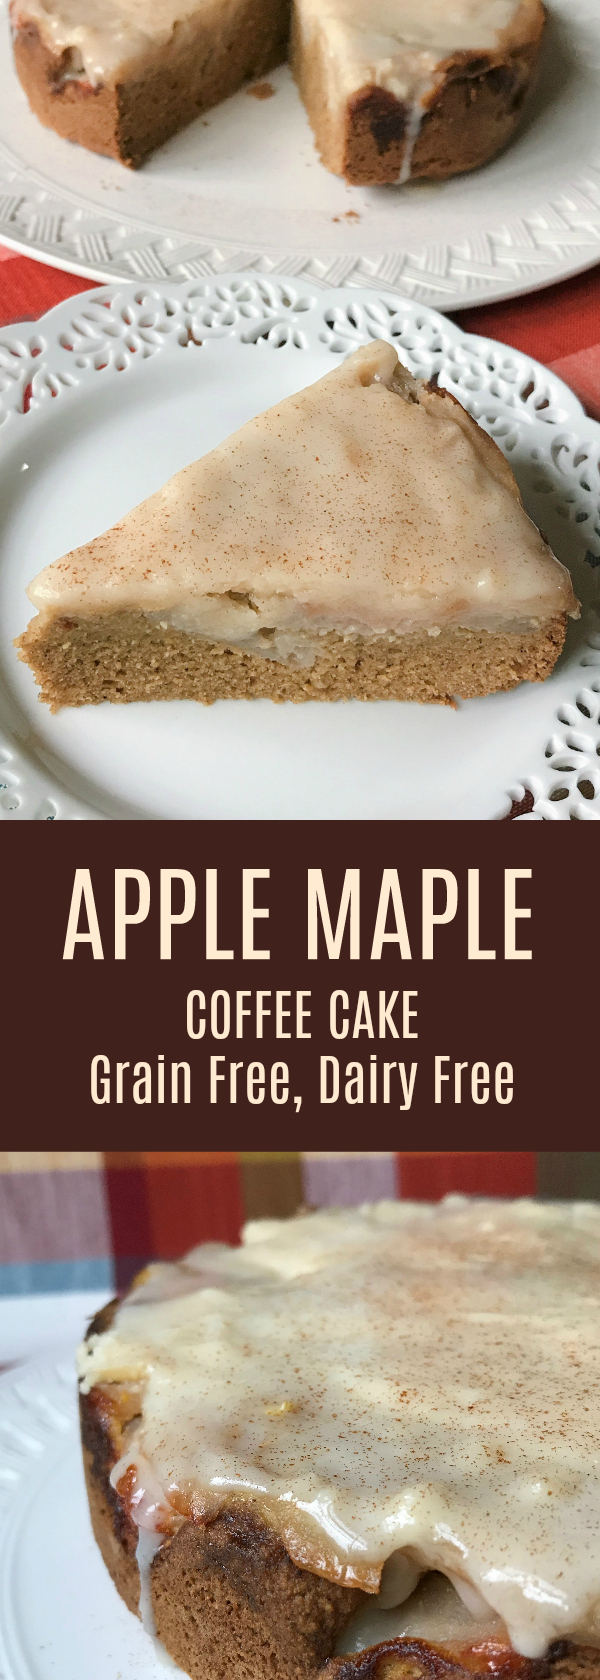 Apple Maple Coffee Cake with Maple Glaze. This cake is moist and perfect for Autumn. Grain, Dairy and Nut Free!